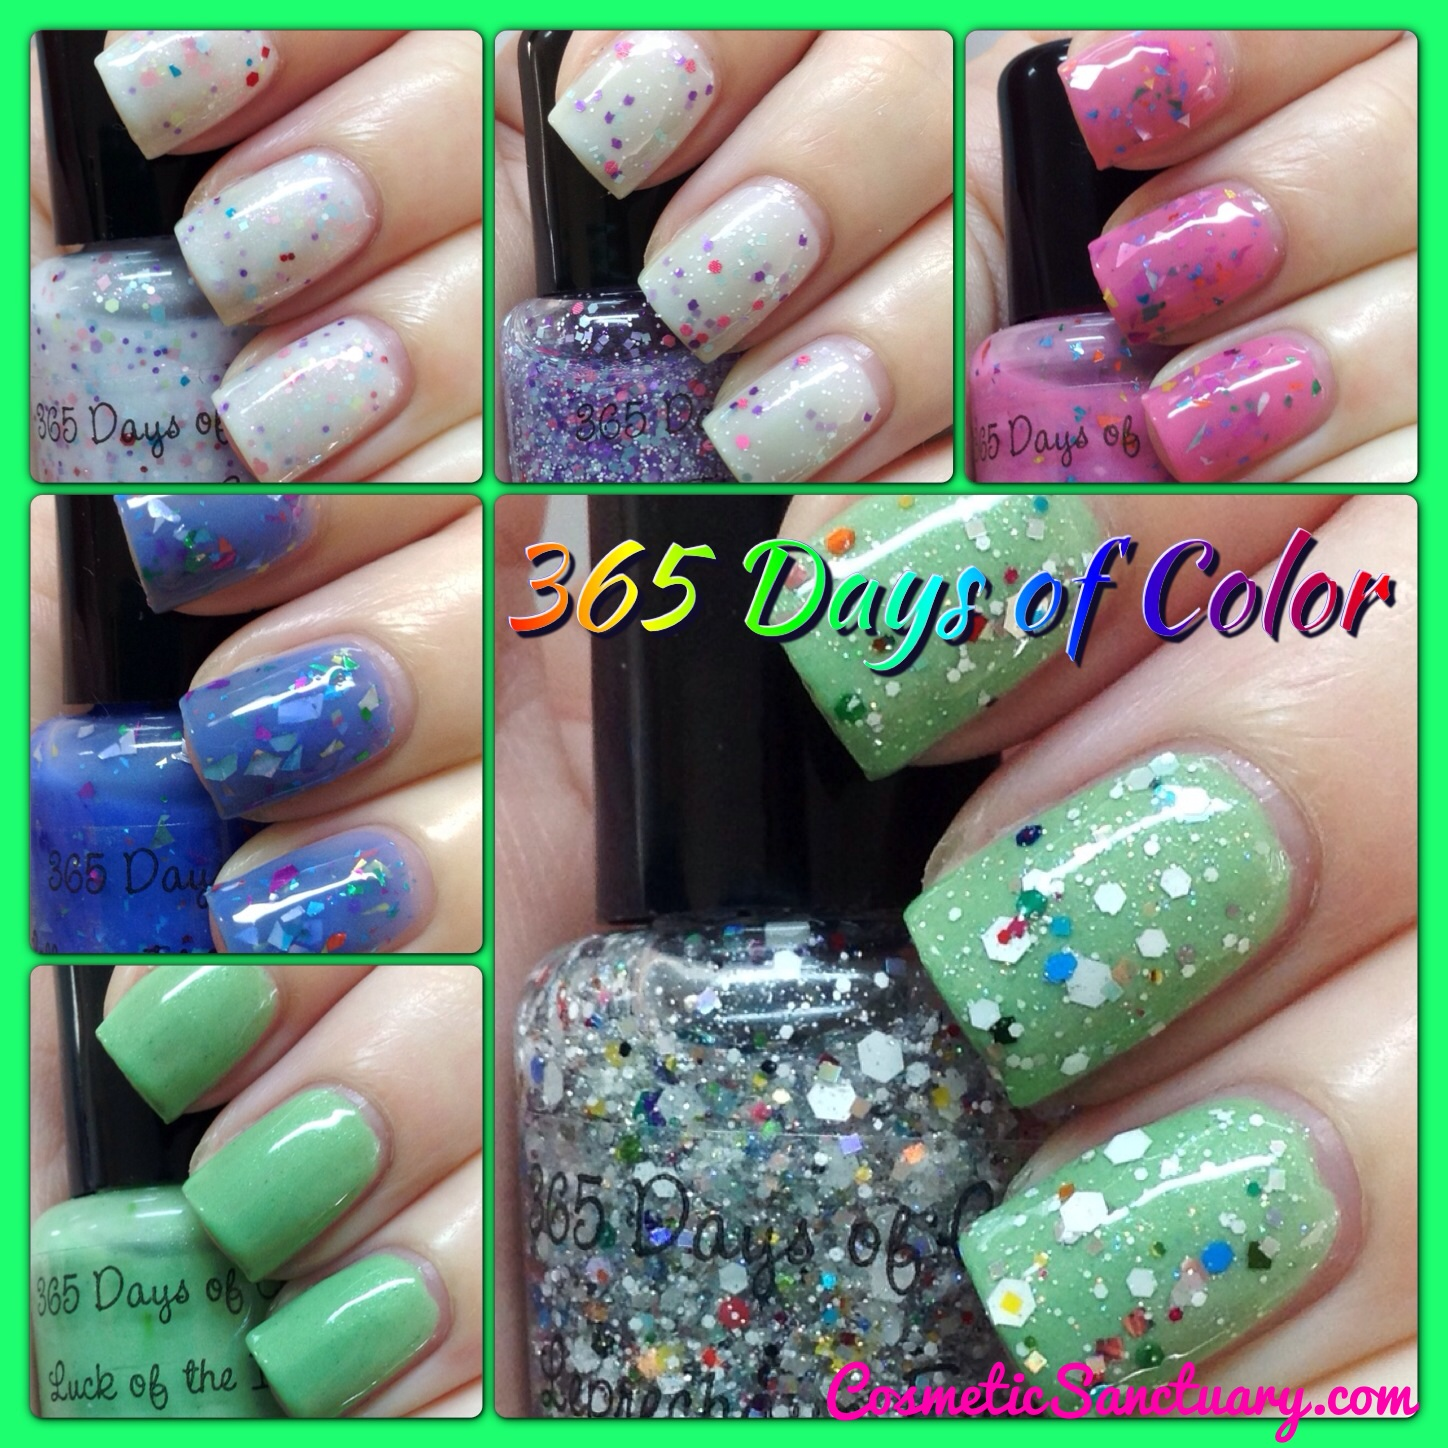 365 Days of Color Spring 2013 Swatches and Review